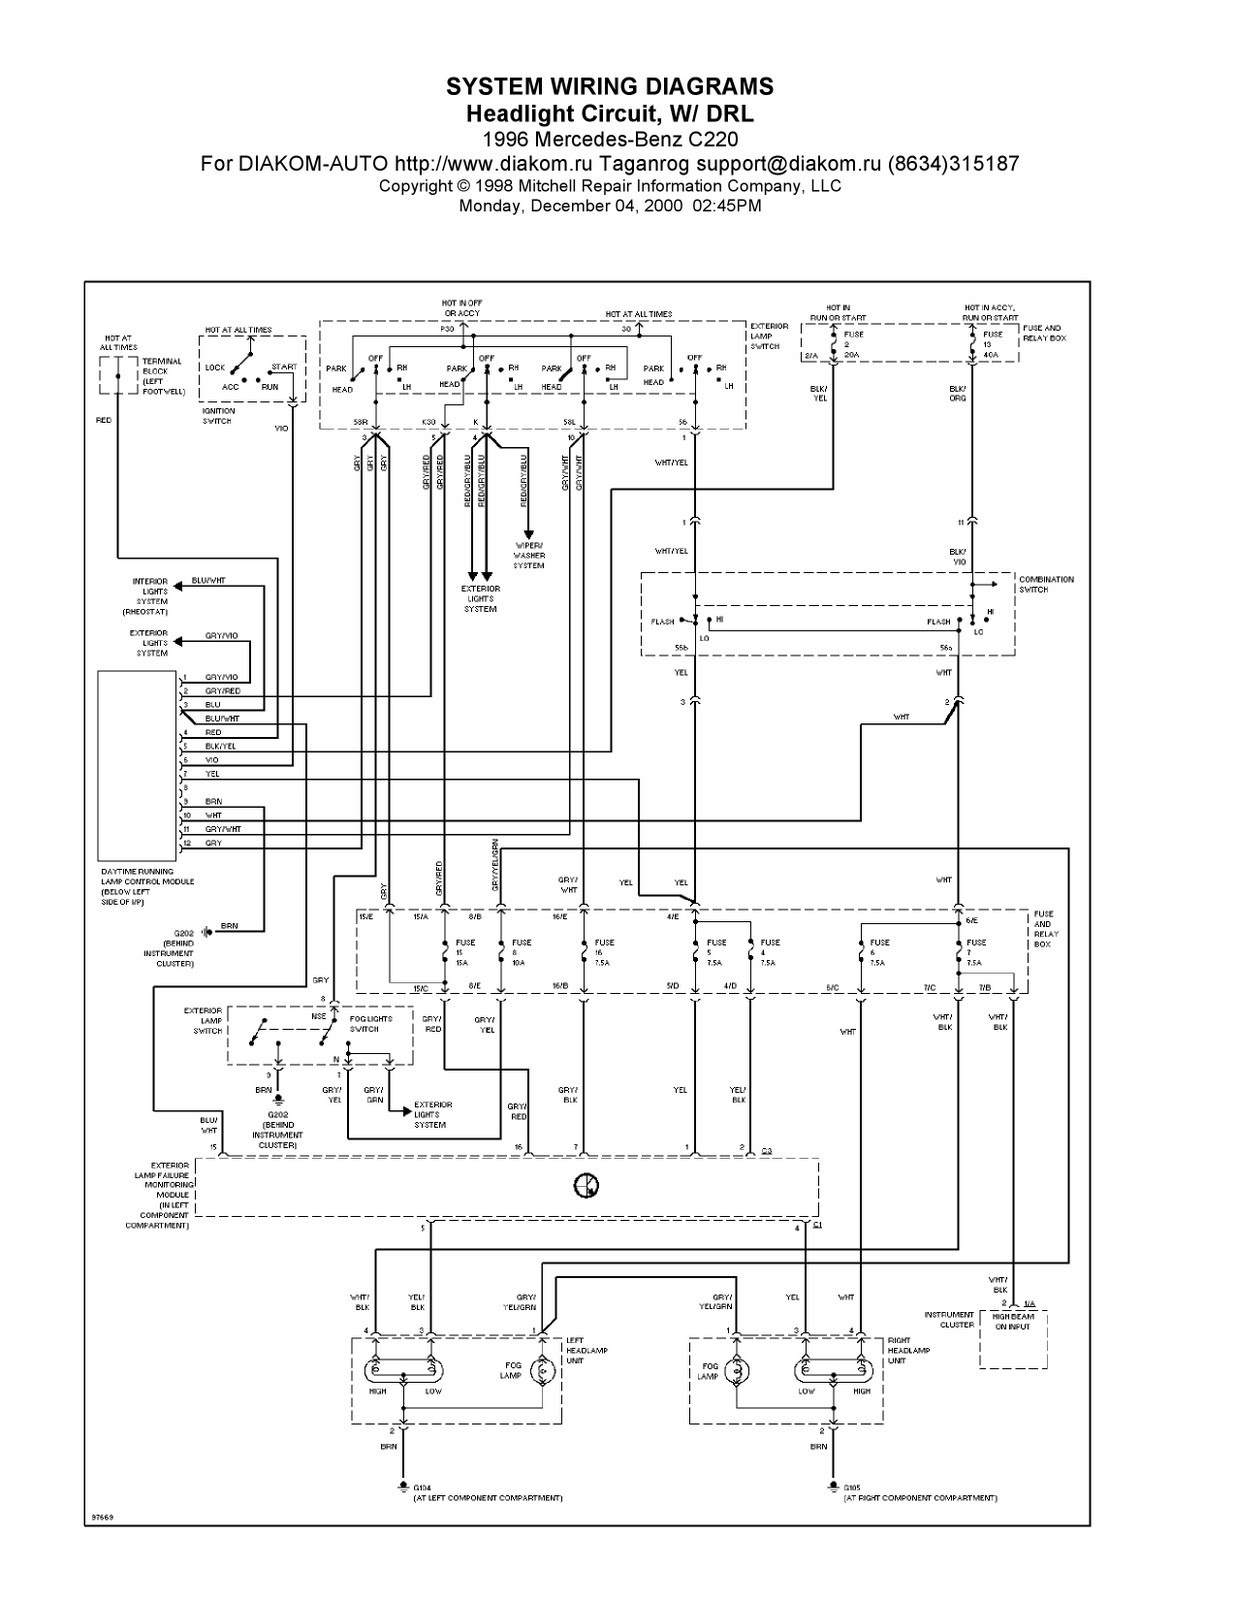 Remarkable Mercedes Car Wiring Diagram Basic Electronics Wiring Diagram Wiring 101 Akebretraxxcnl